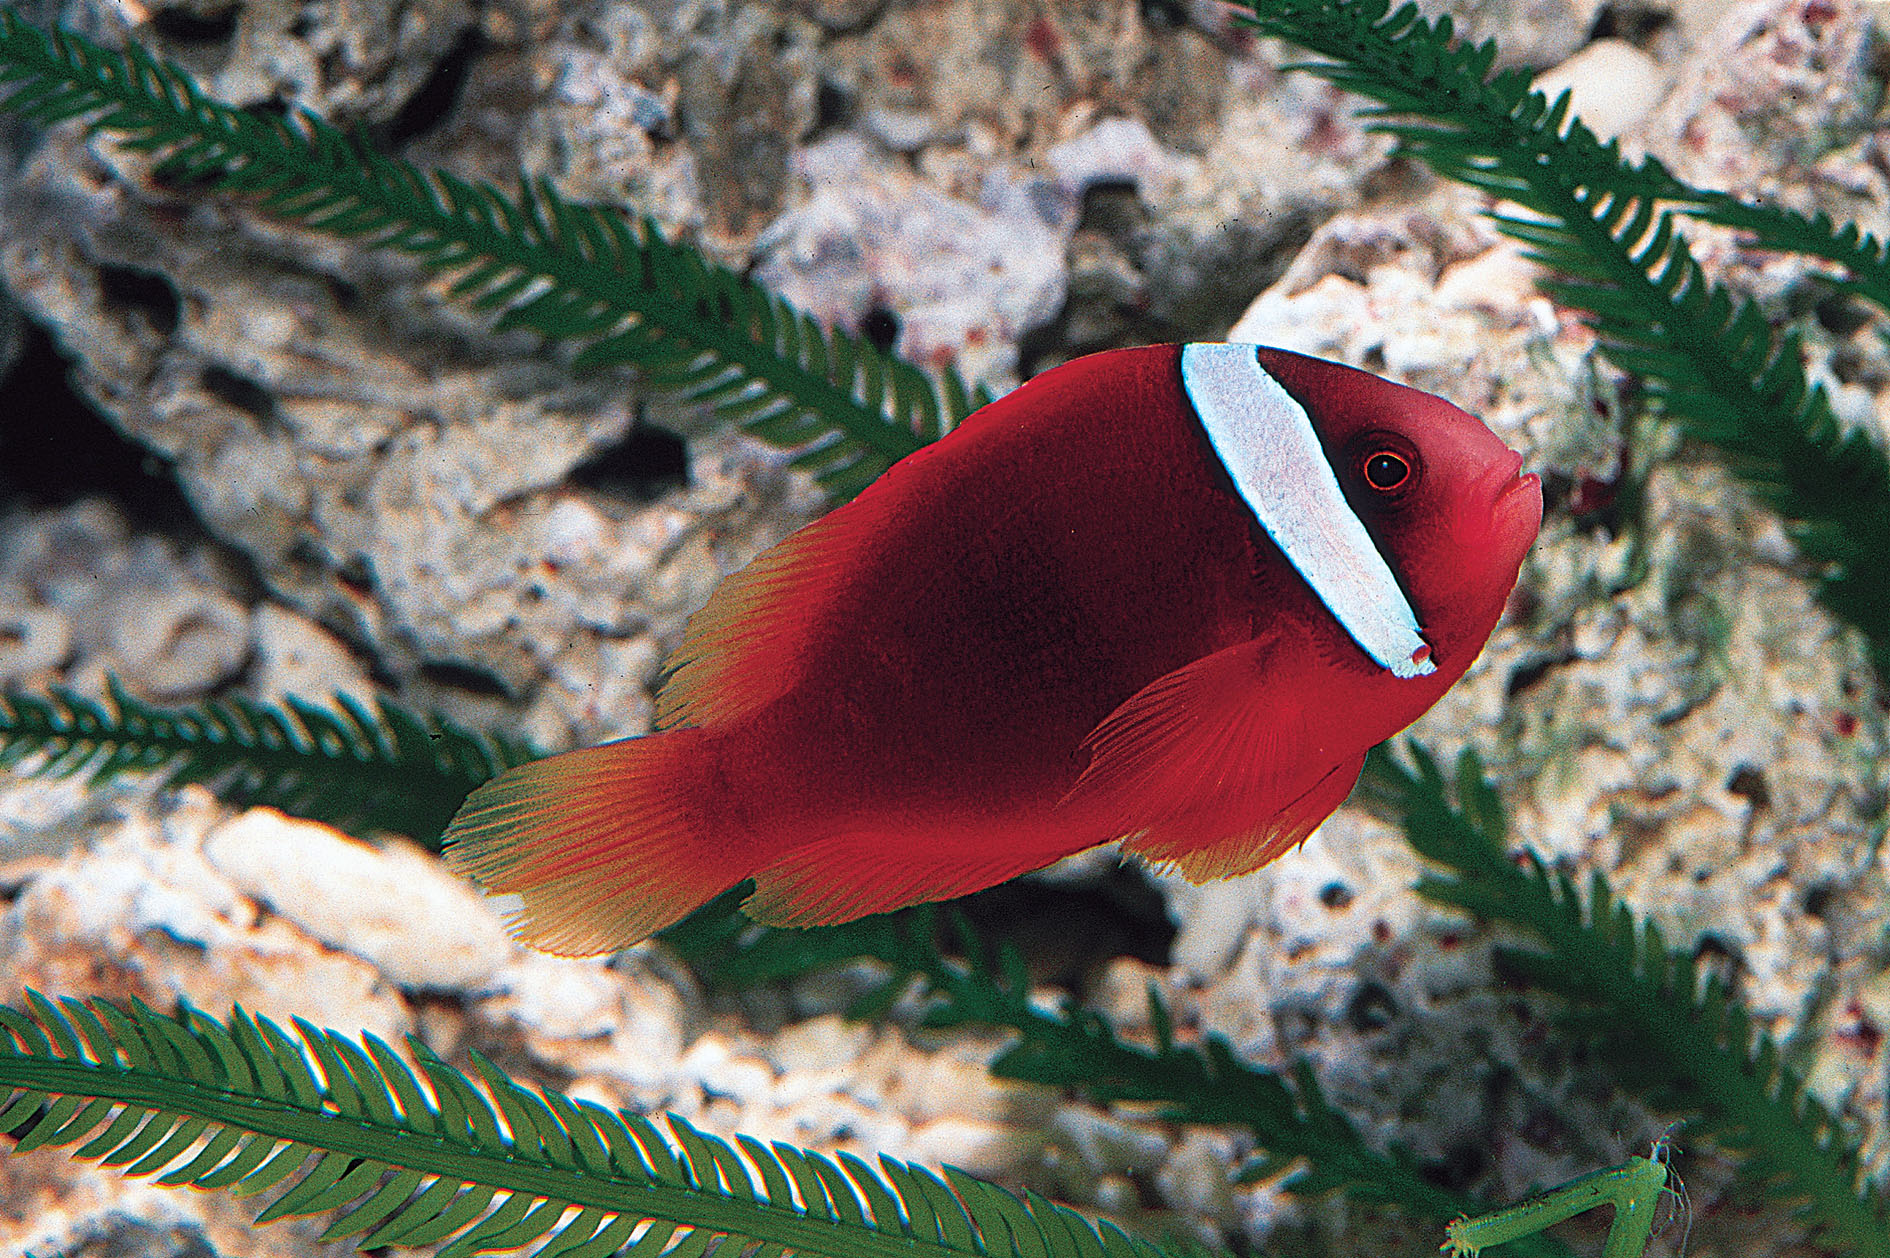 Clownfish Amphiprioninae Wholesale Export - Jy Lin Trading Taiwan